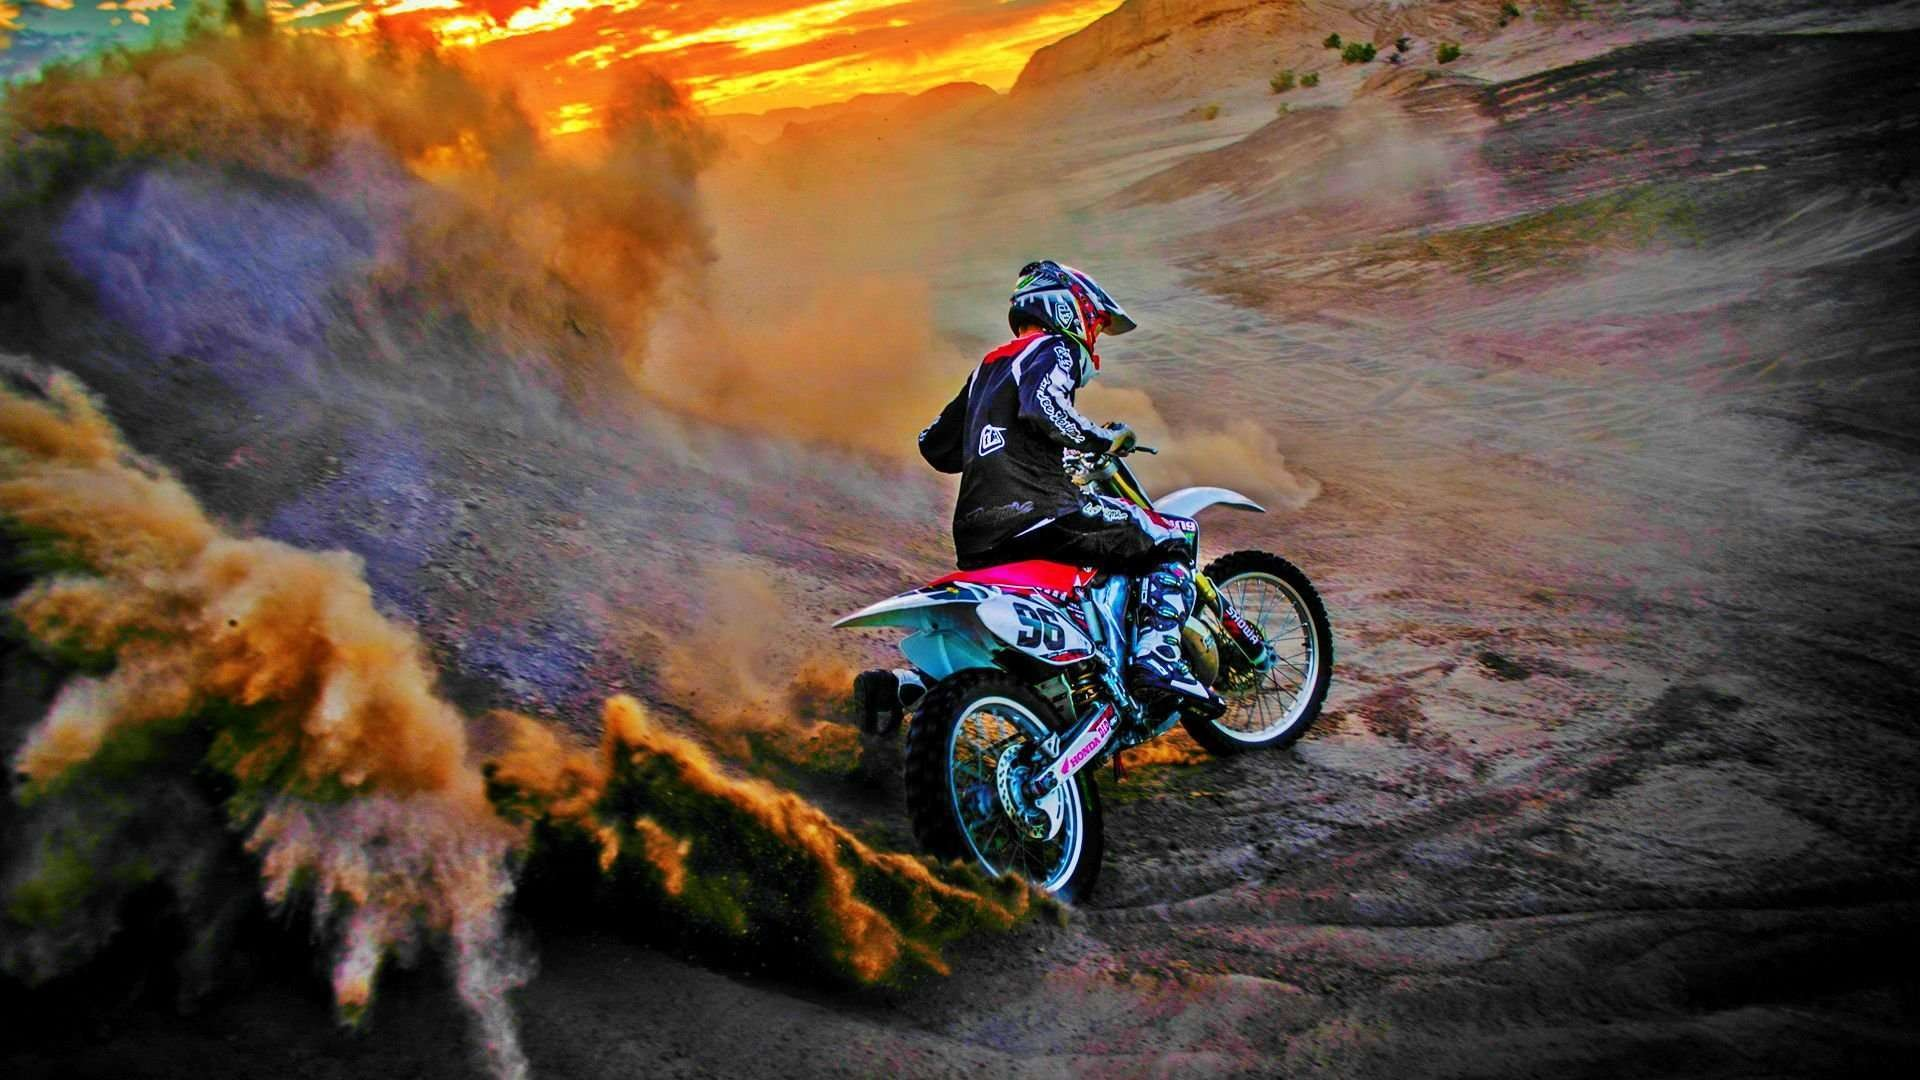 10 New Ktm Dirt Bike Wallpapers Full Hd 1080p For Pc: Dirt Bikes Wallpapers ·① WallpaperTag